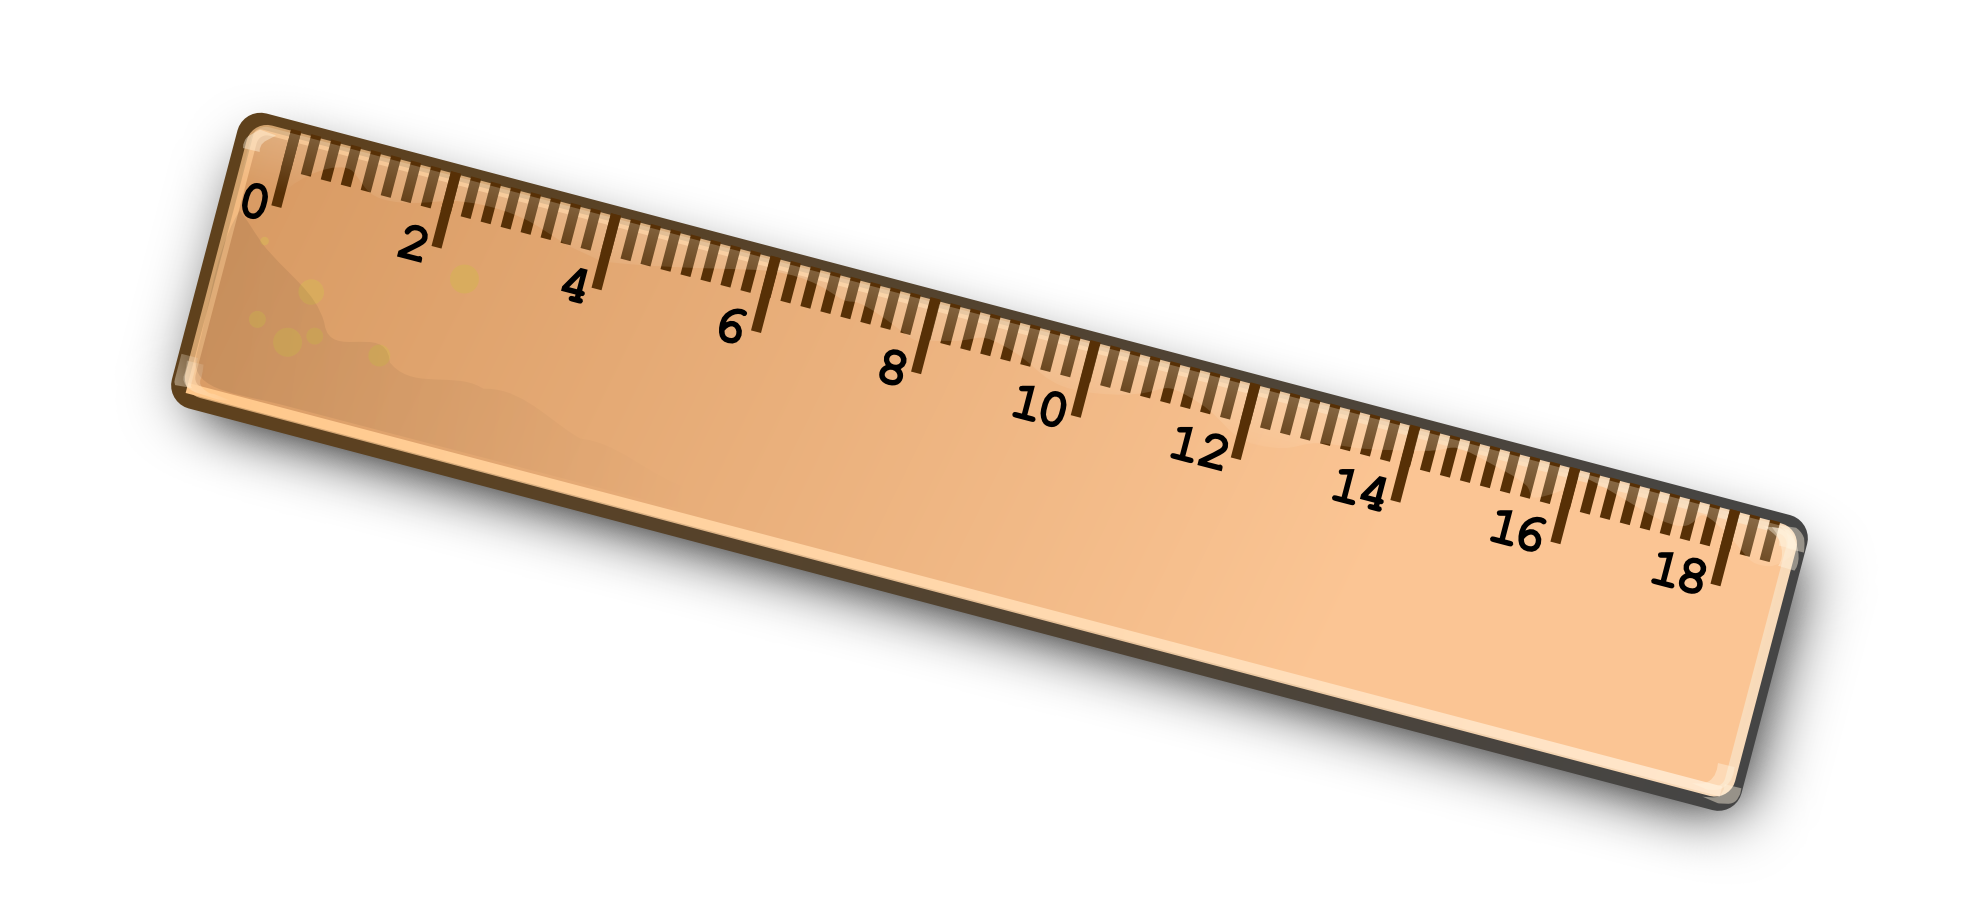 Clipart ruler engraved. Yardstick free on dumielauxepices